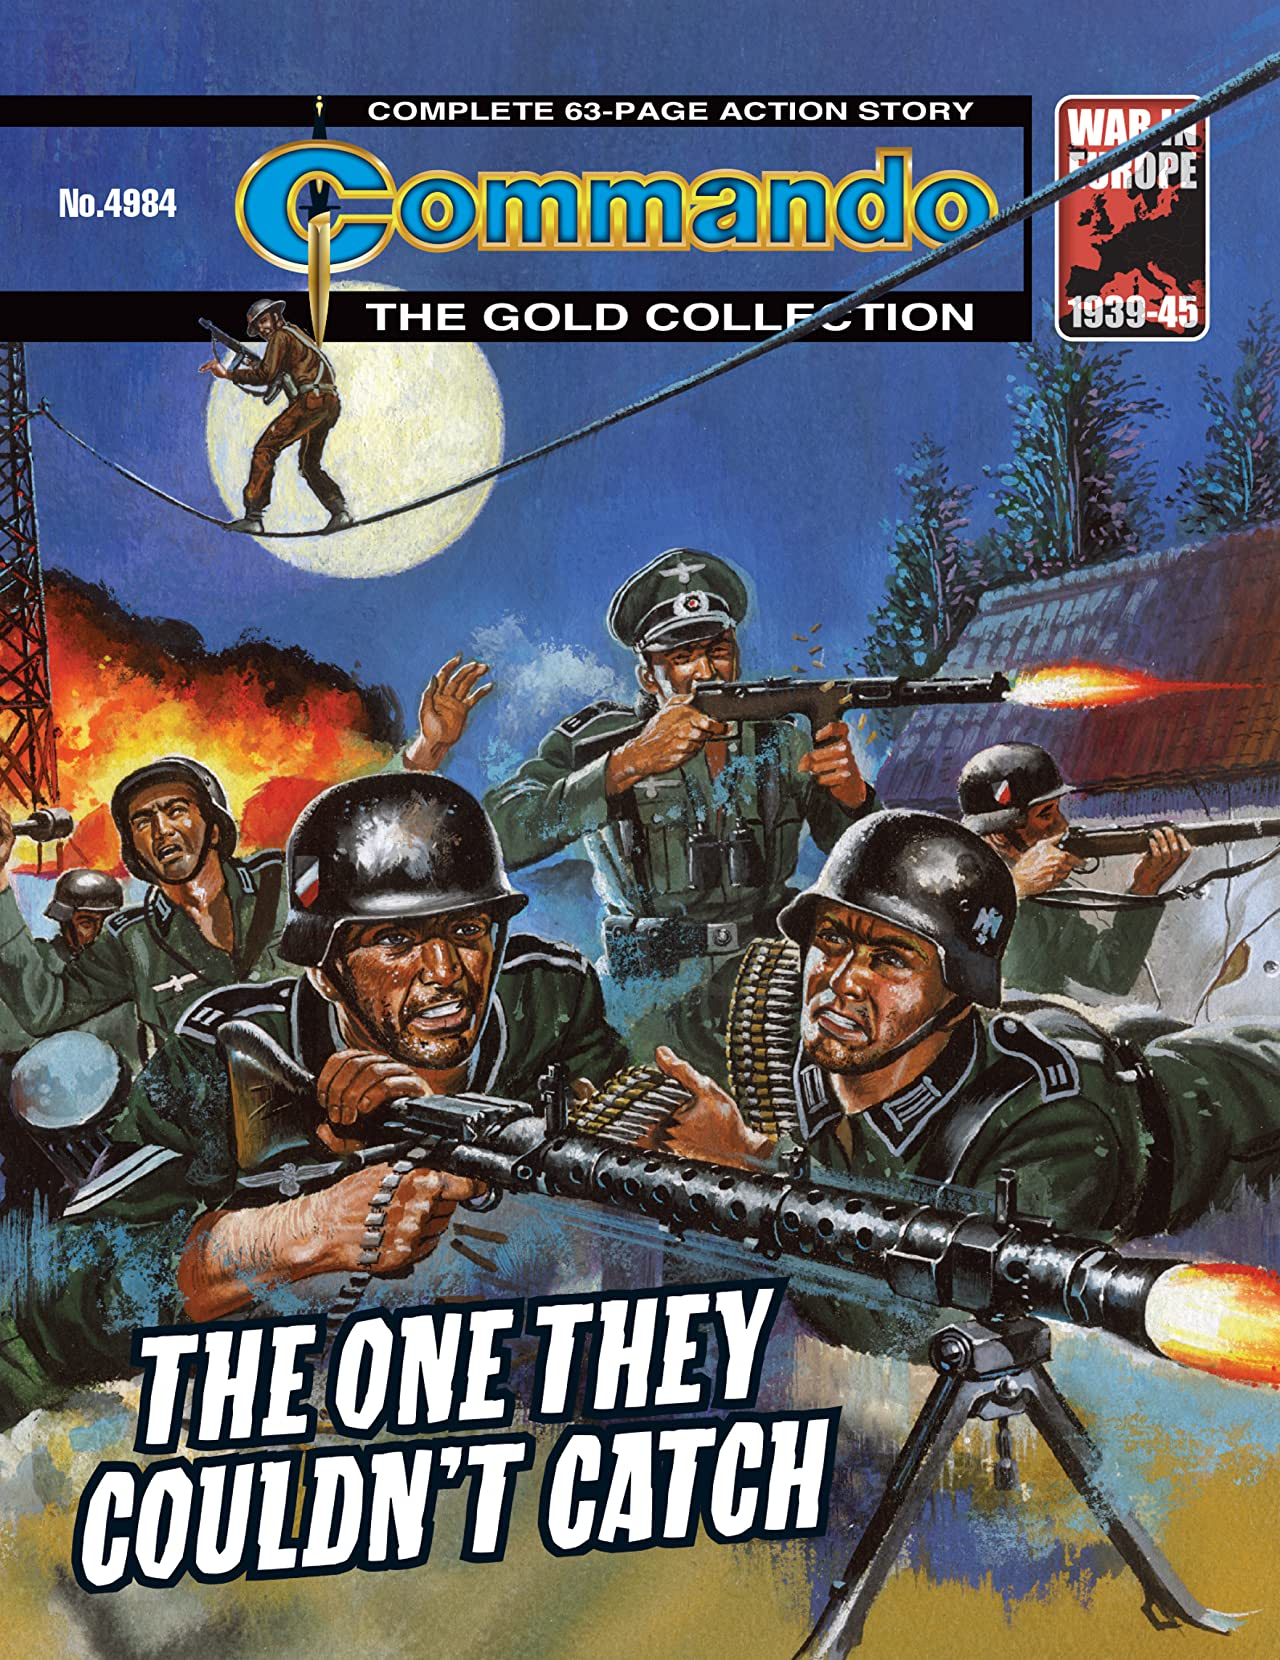 Commando #4984: The One They Couldn't Catch